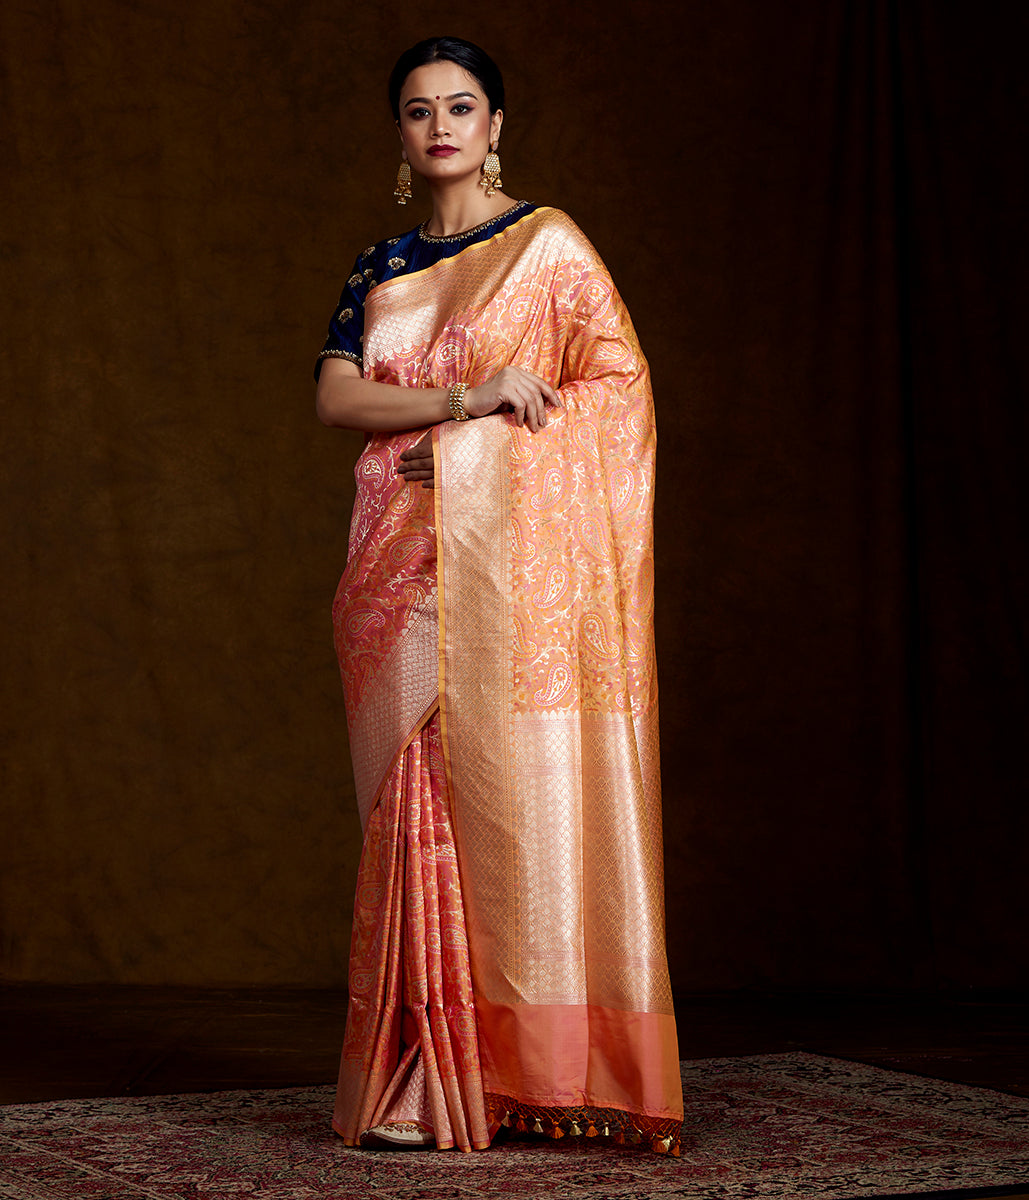 Peach and Orange Meenakari Banarasi Saree